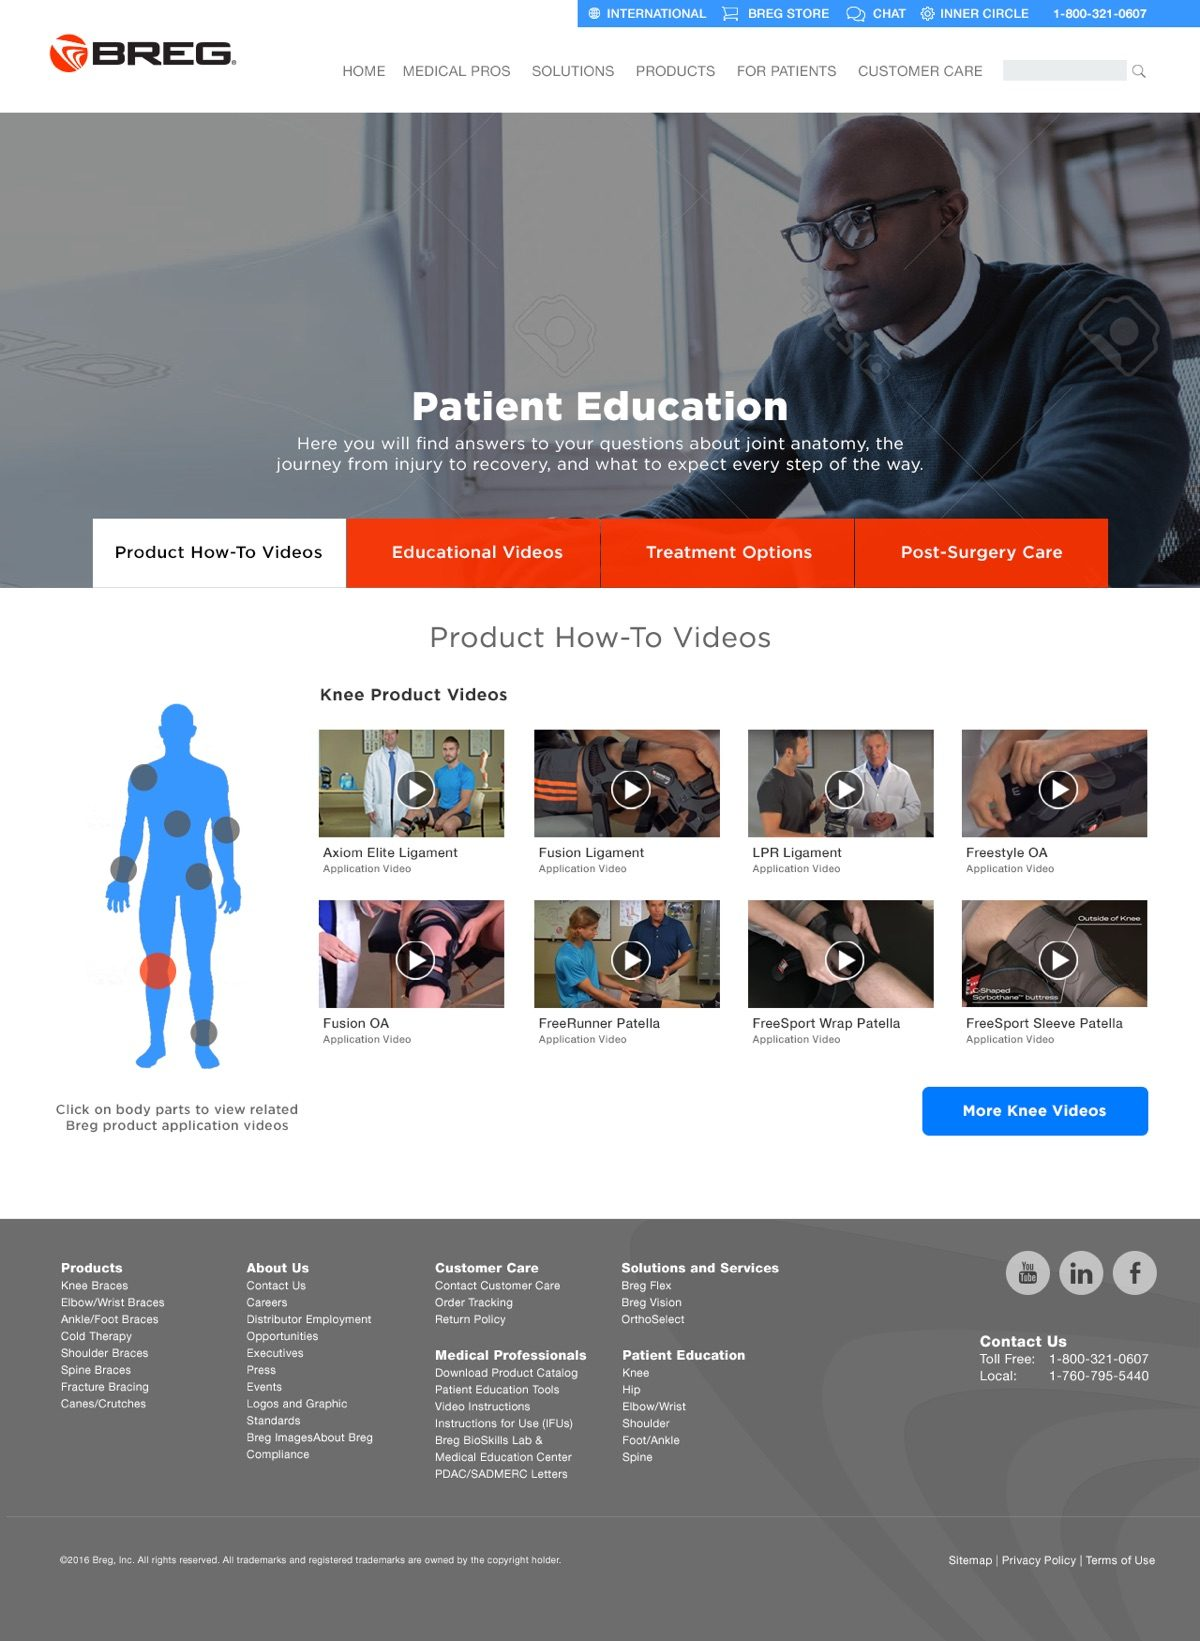 Breg.com Patient Education Landing